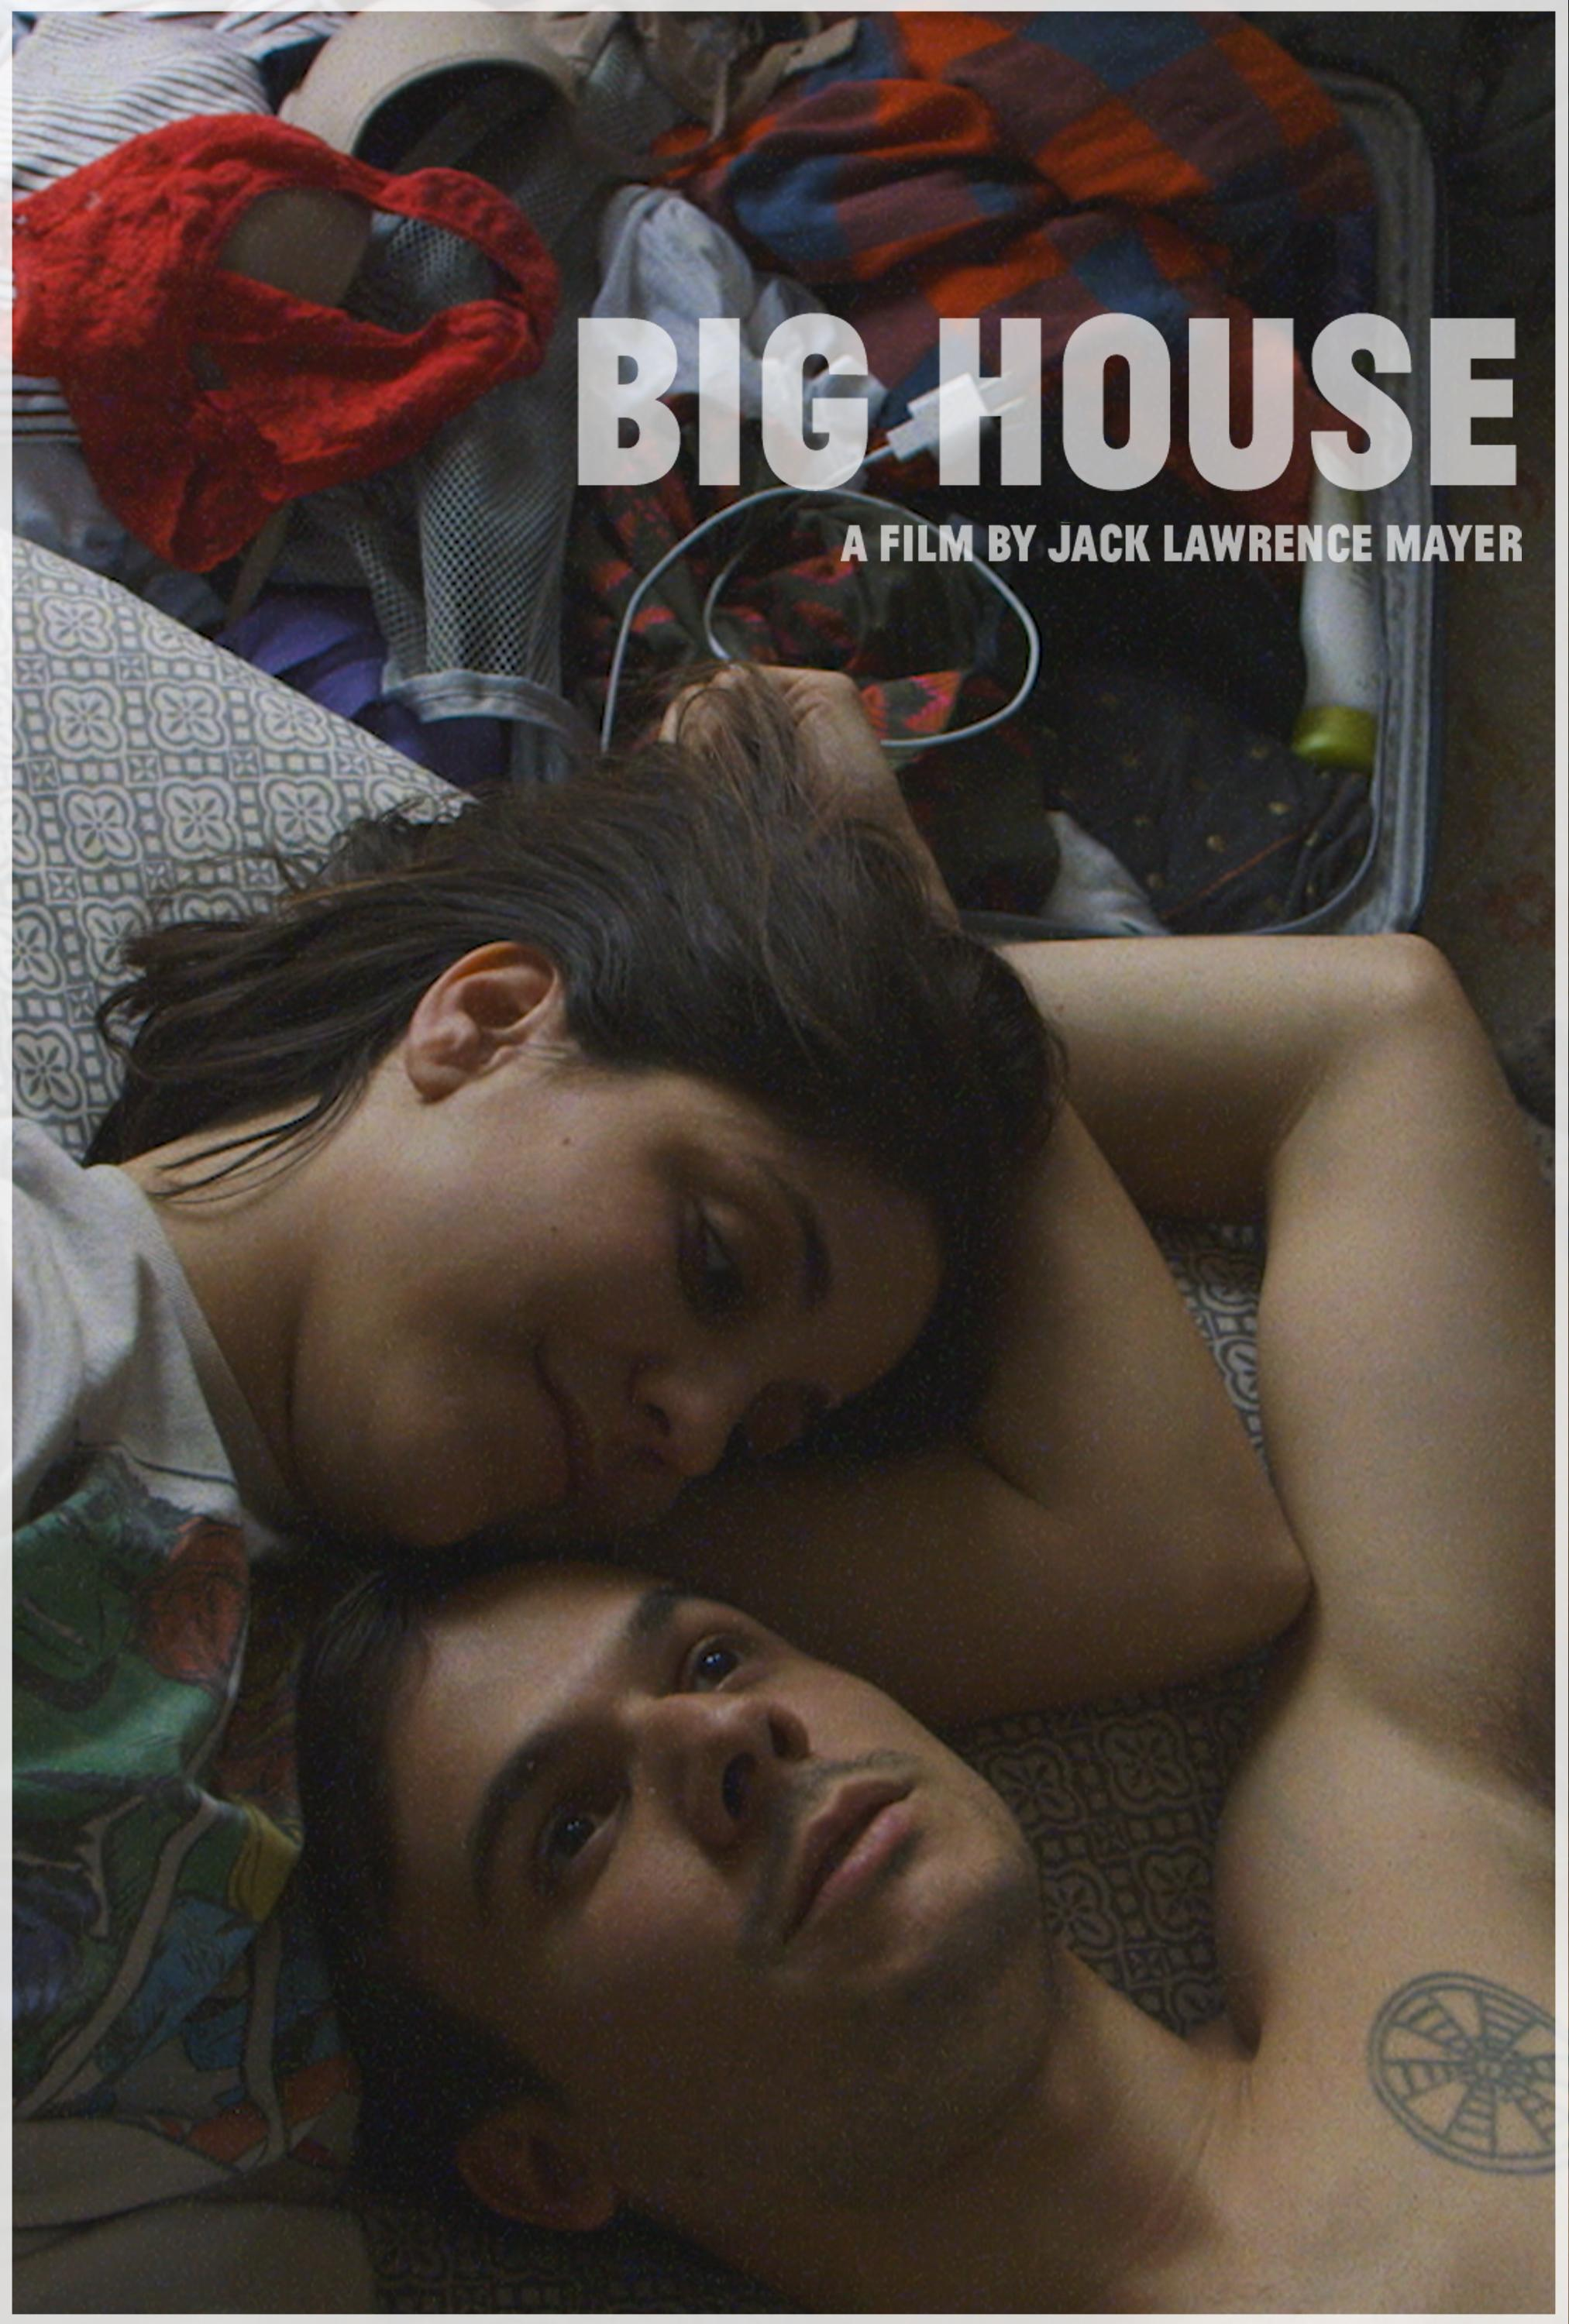 Big House (2020) Hindi (Voice Over) Dubbed+ English [Dual Audio] WebRip 720p [1XBET]